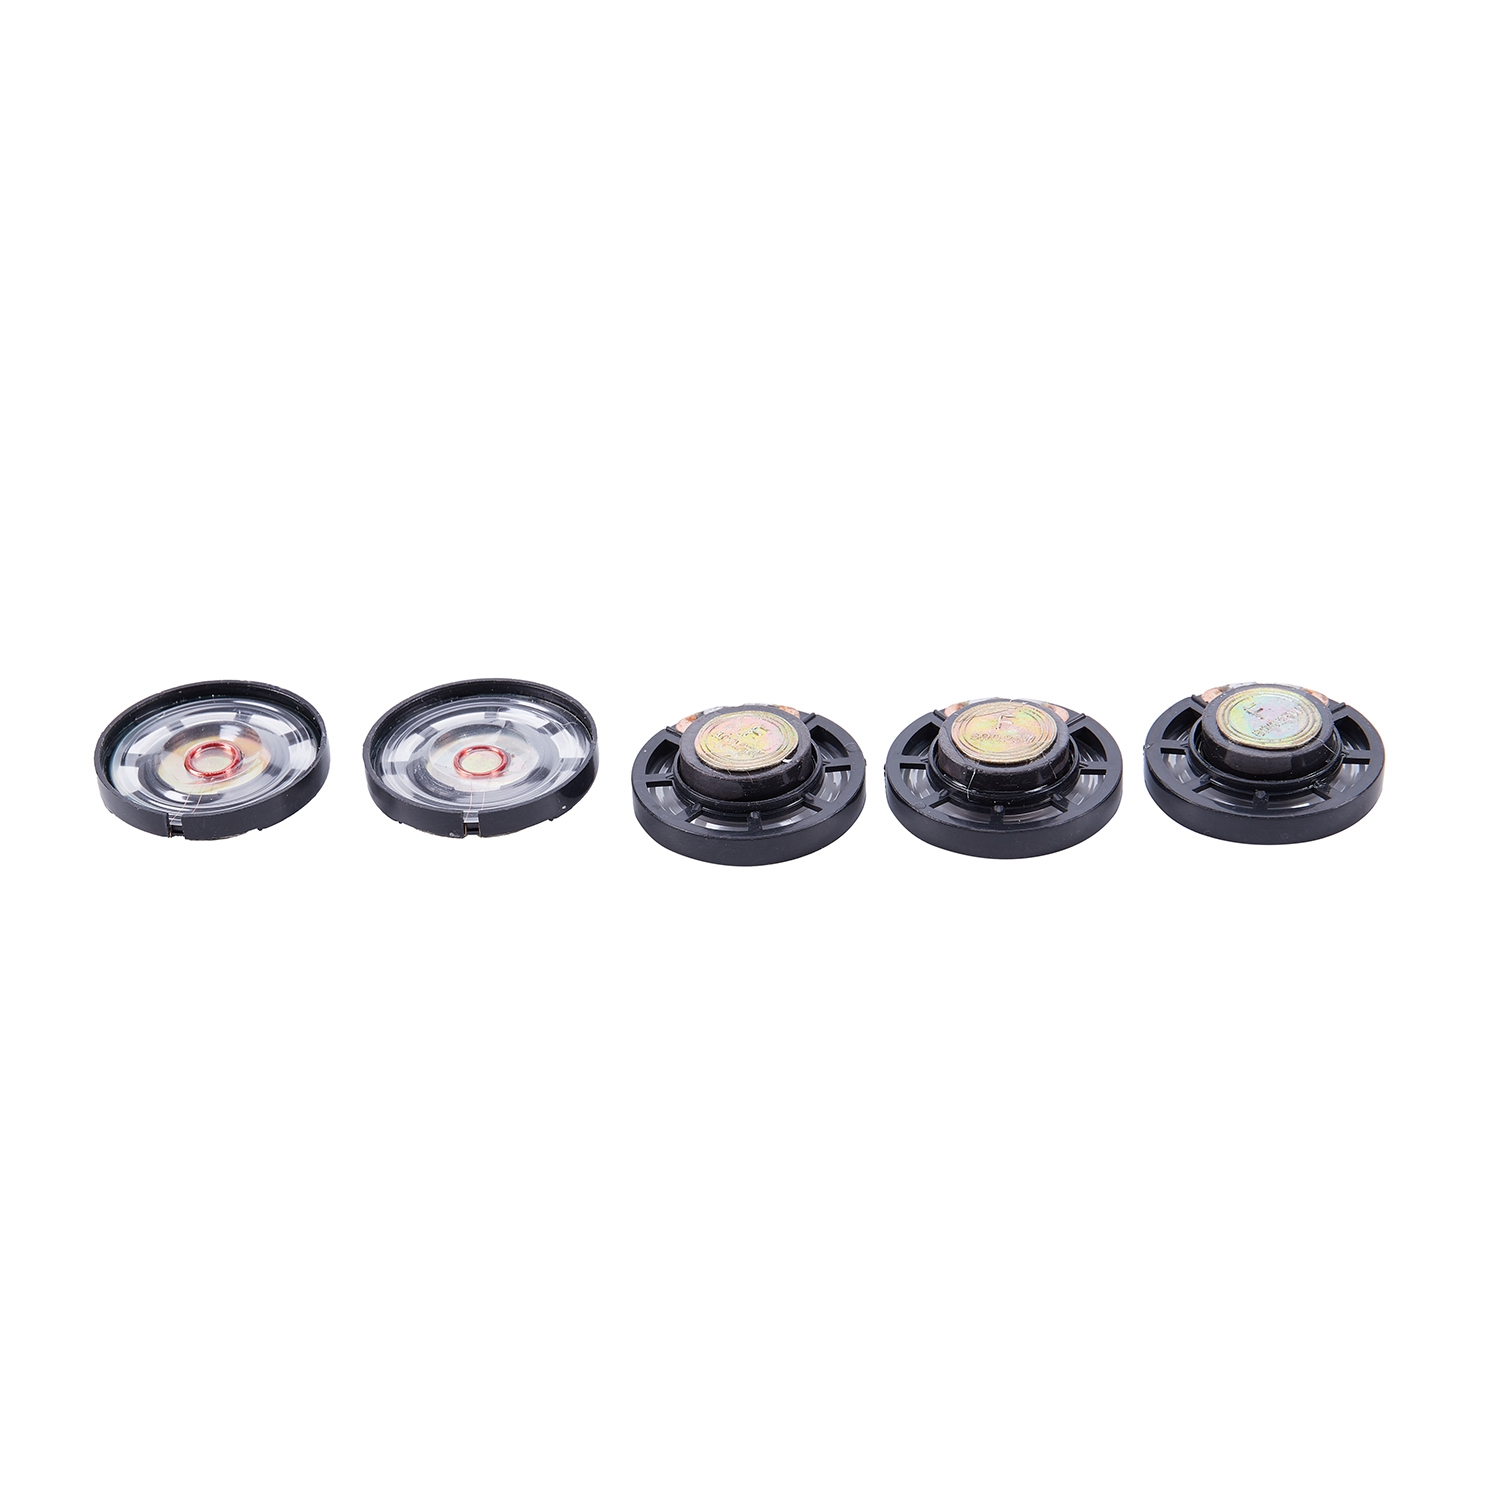 Contemplative Ffyy-5 Pieces 8 Ohm 0.25 W 29 Mm Magnetic Closure Speaker For Electric Toy Speakers